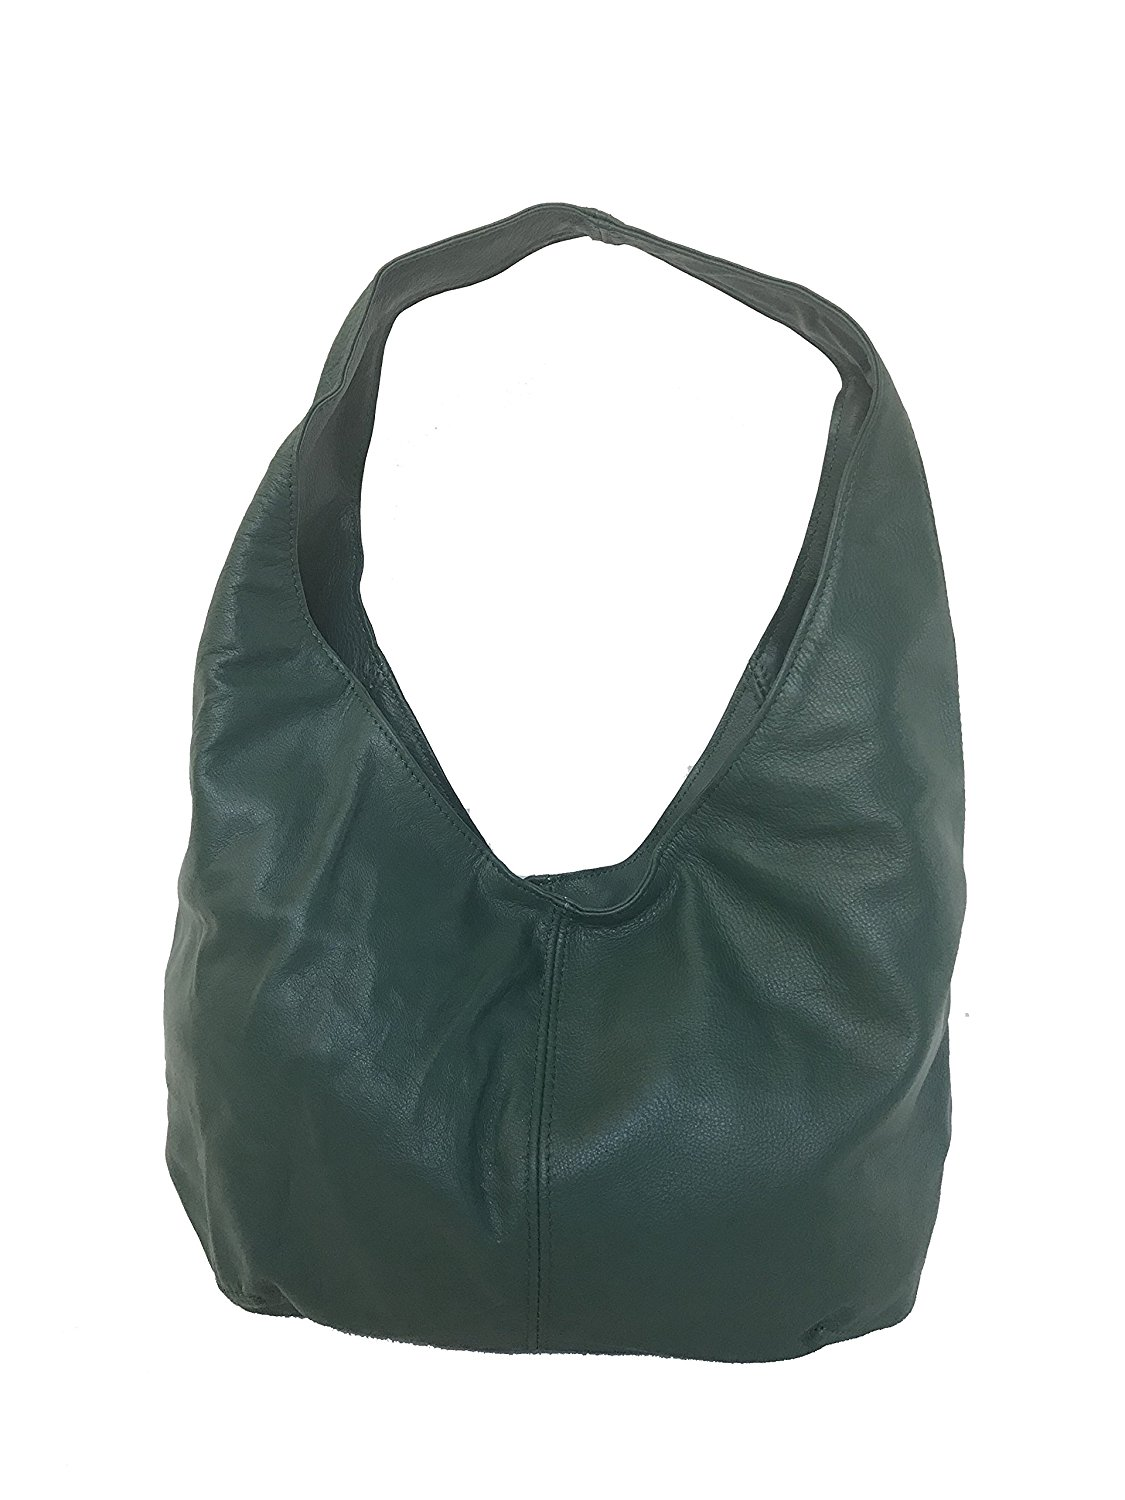 42fe8dfe22 Get Quotations · Fgalaze Hunter Green Leather Hobo Bag Purse